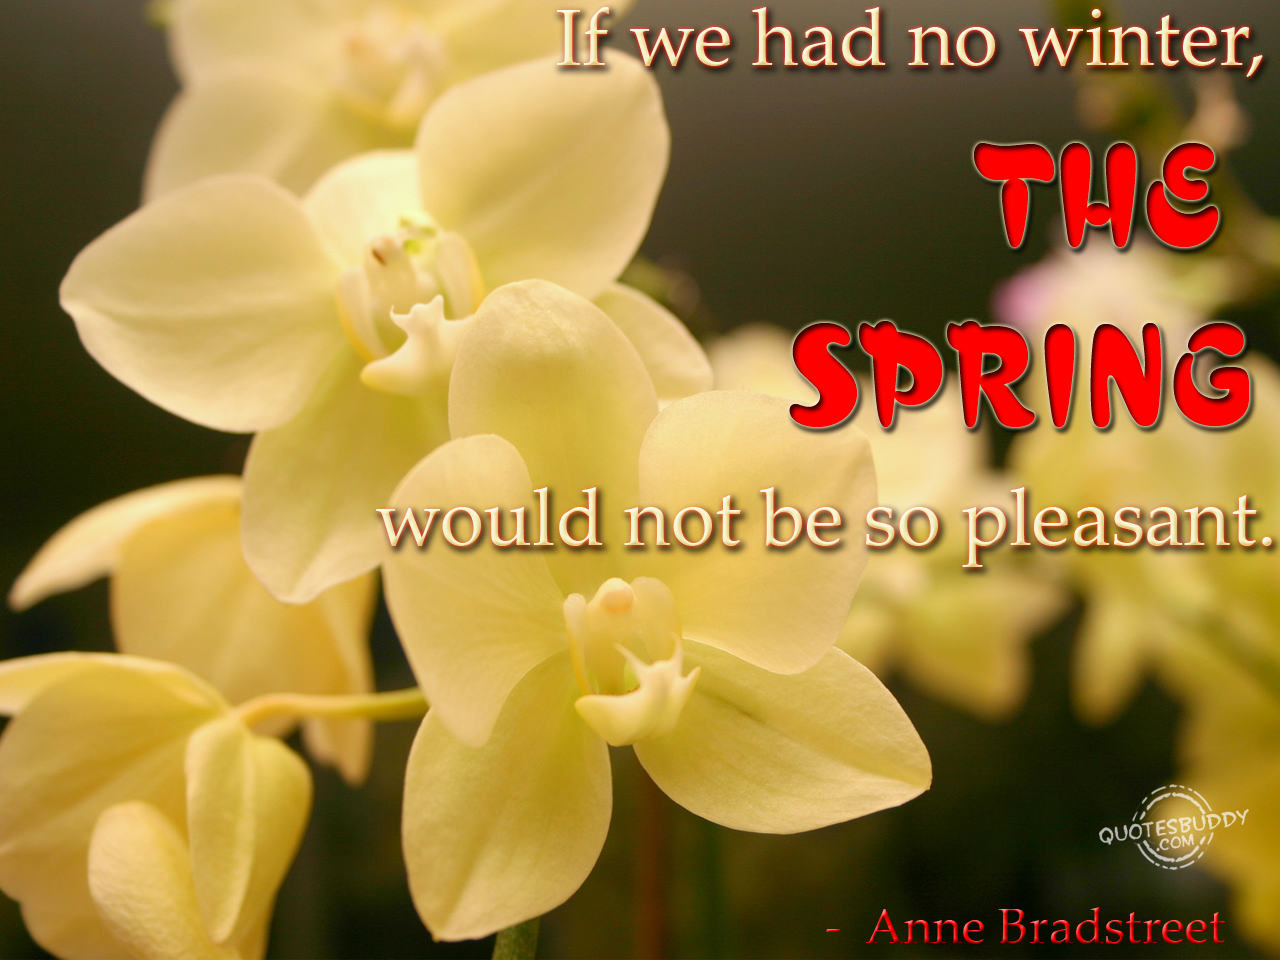 If We Had No Winter, The Spring Would Not Be So Pleasant